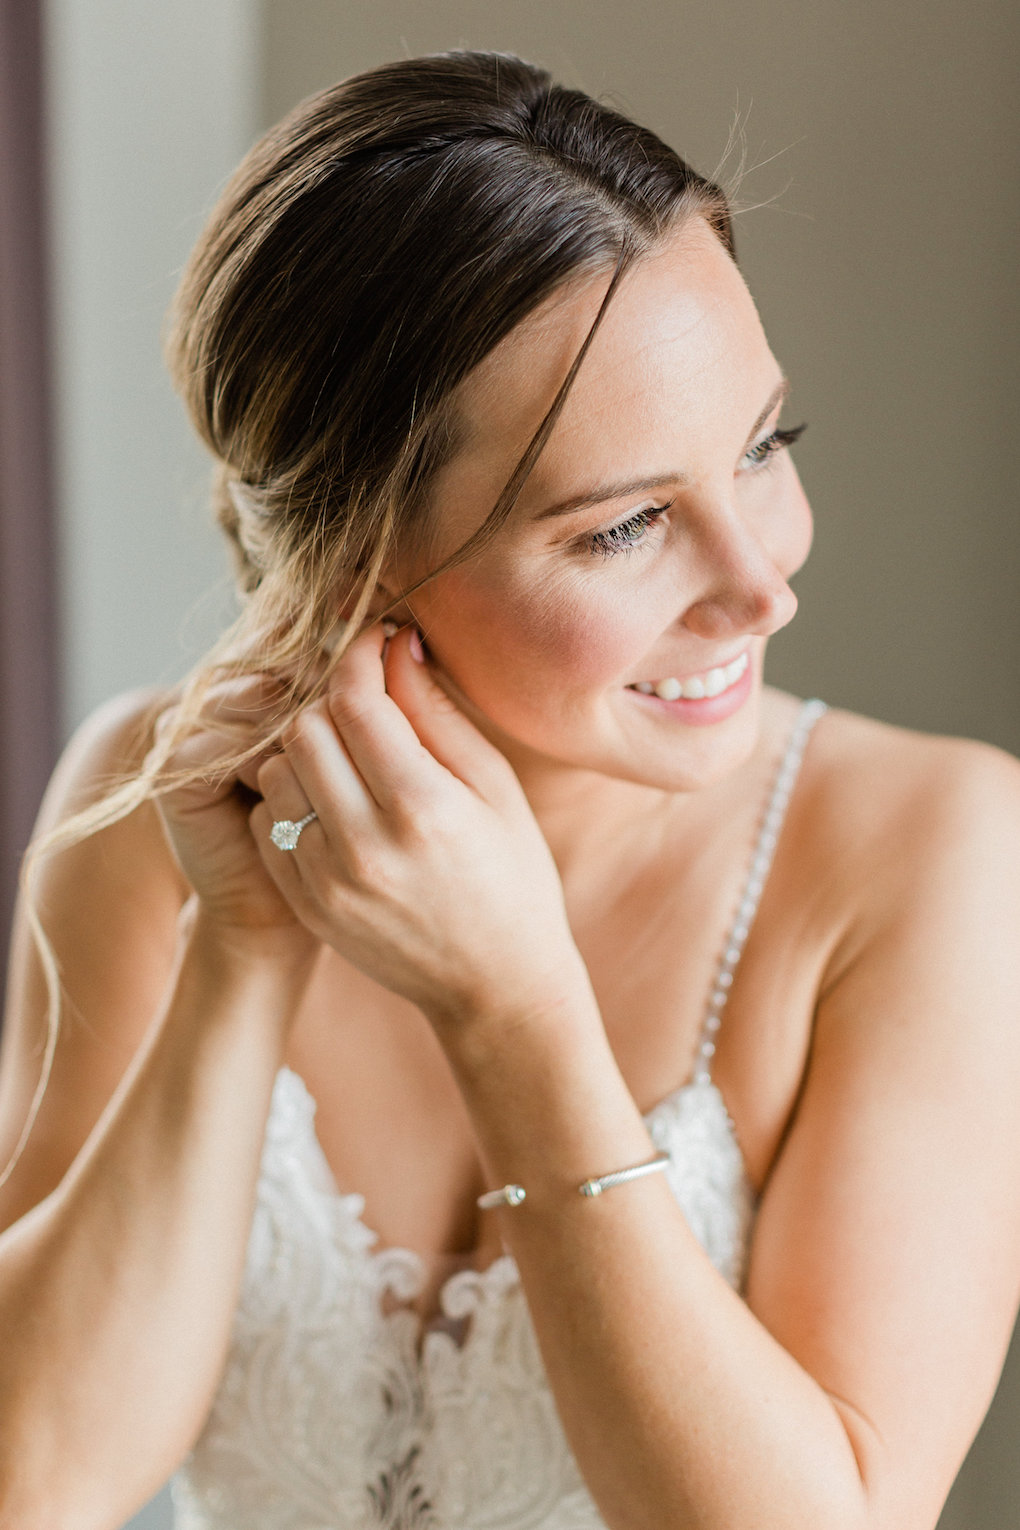 Bride getting ready for chic wedding in Buffalo, NY planned by Exhale Events. Find more timeless wedding inspiration at exhale-events.com!